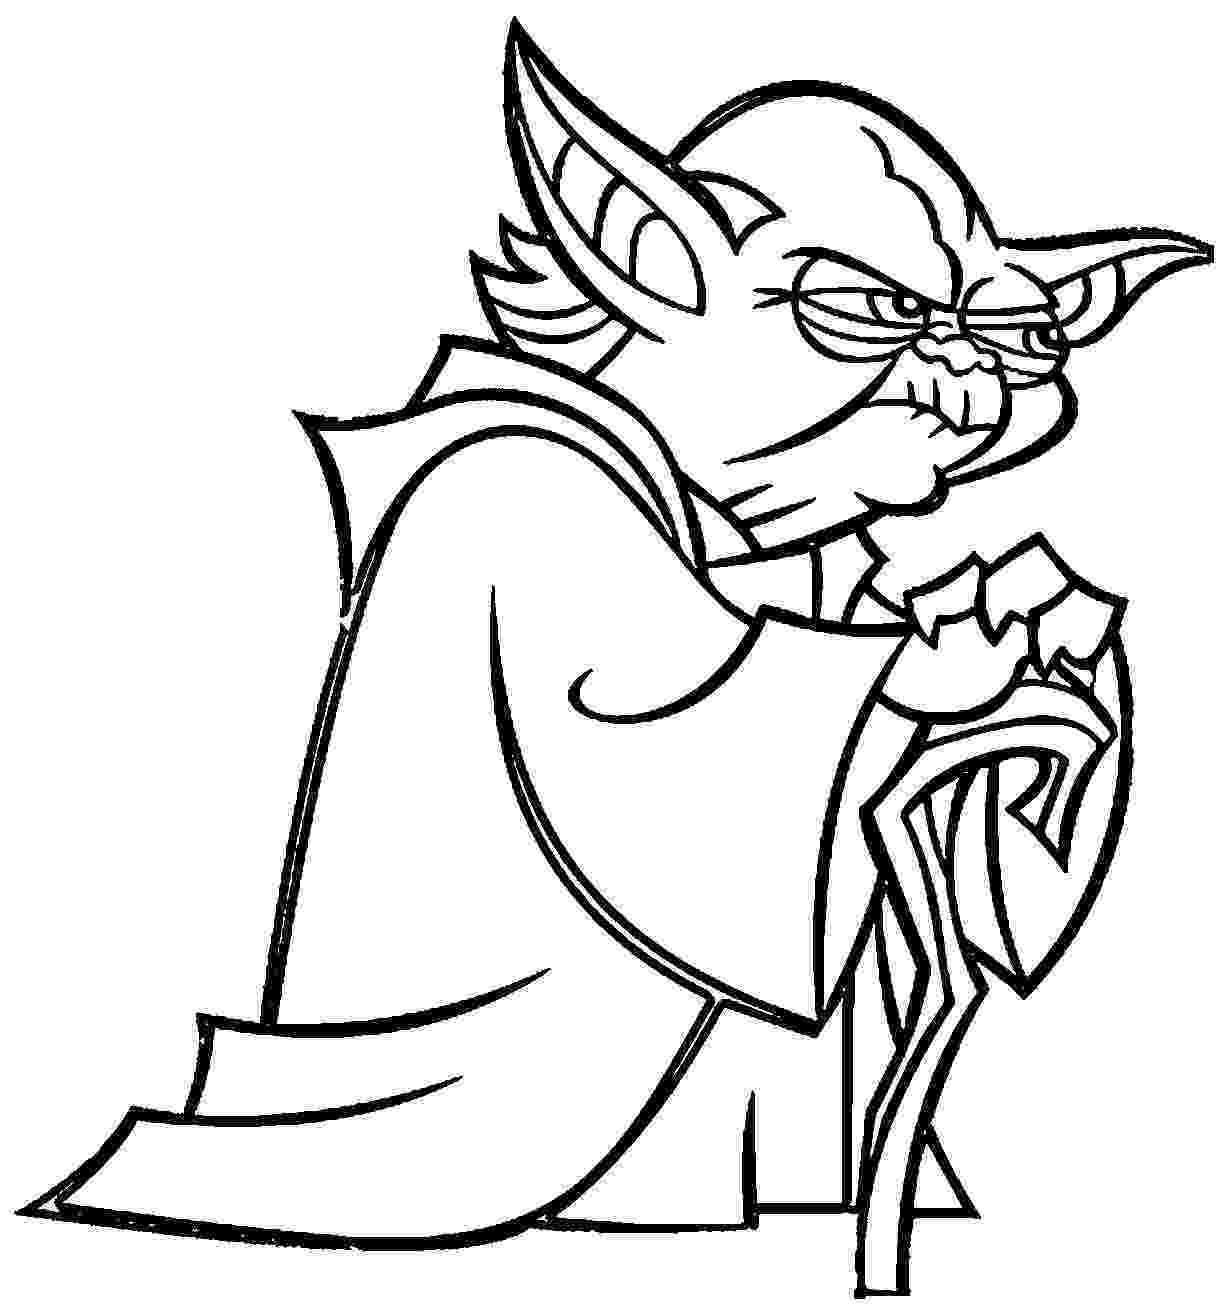 star wars coloring pages to print for free free printable star wars coloring pages free printable print to free coloring pages wars star for